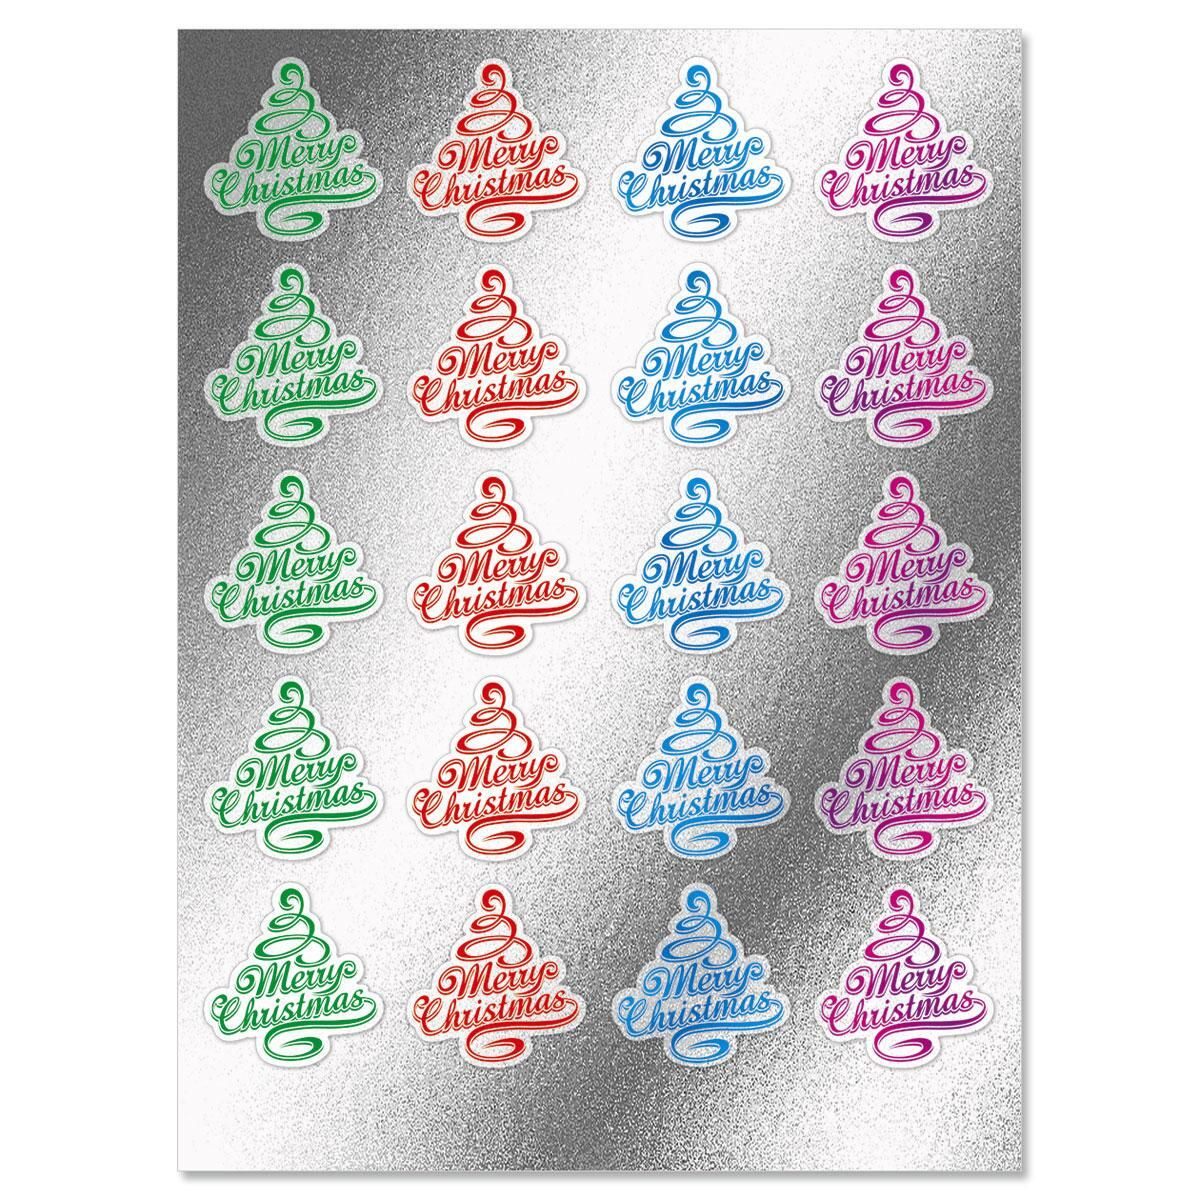 Foil Christmas Tree Envelope Sticker Seals